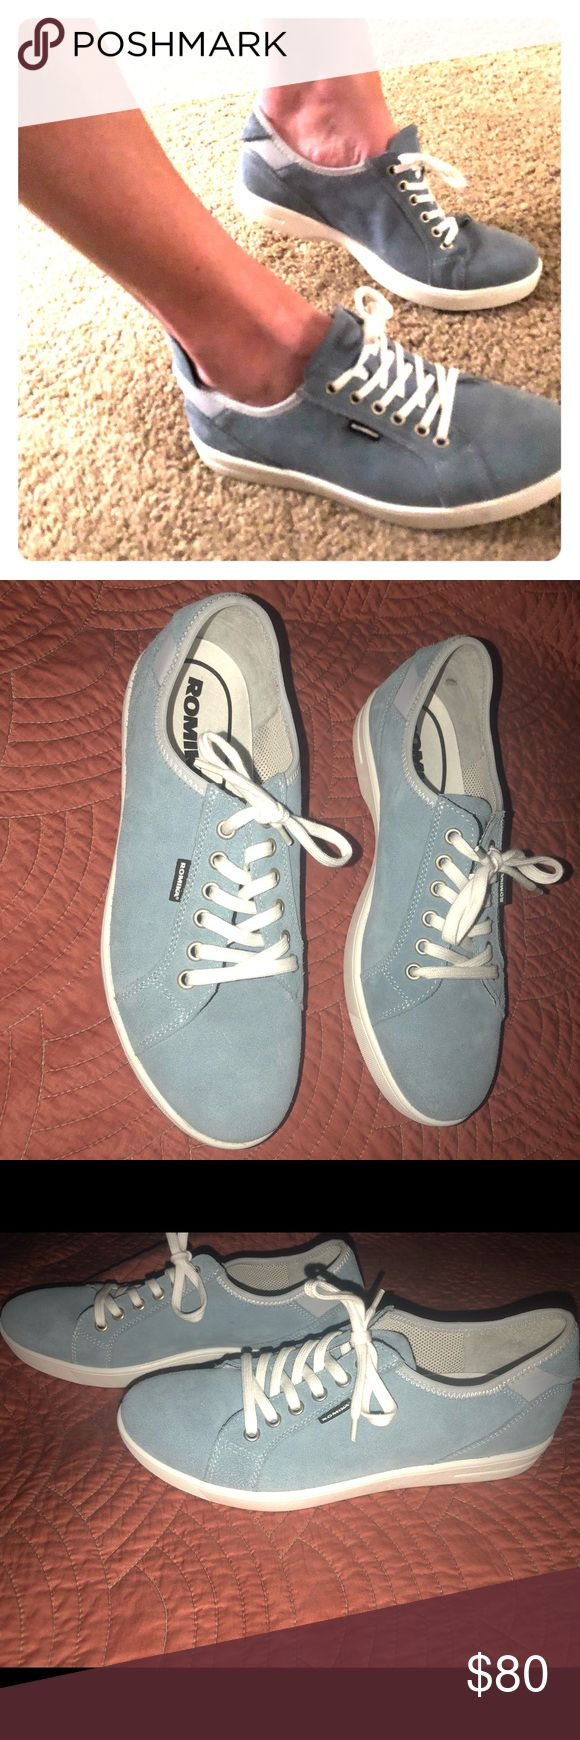 Romika shoes Brand new with tags! Romika Shoes Sneakers